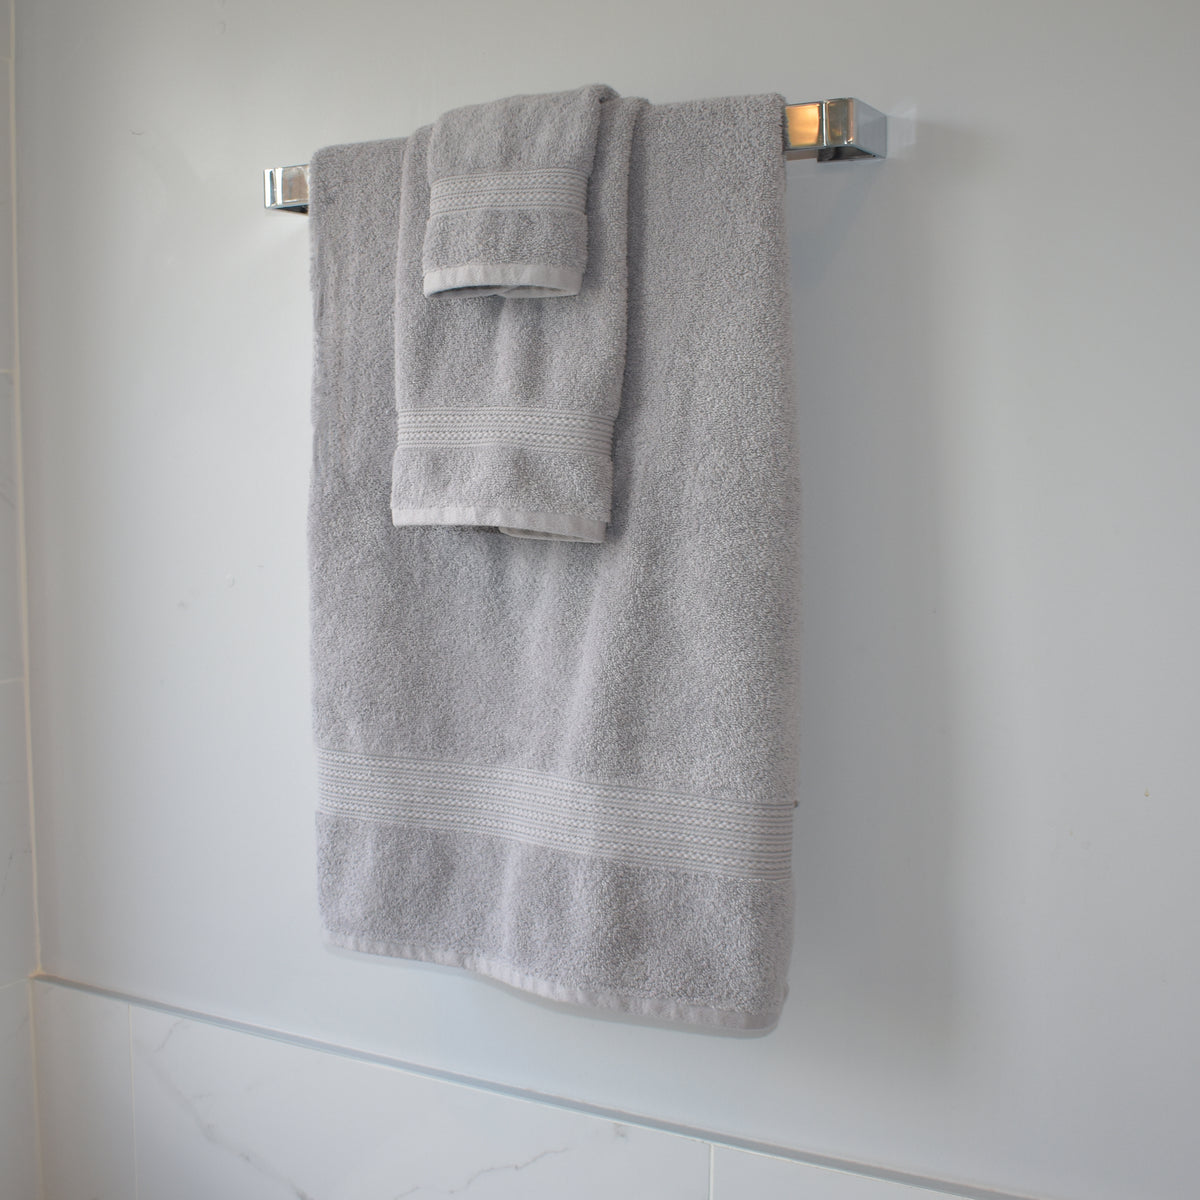 Braid Turkish Towels in Marble Grey Hanging on Towel Rack